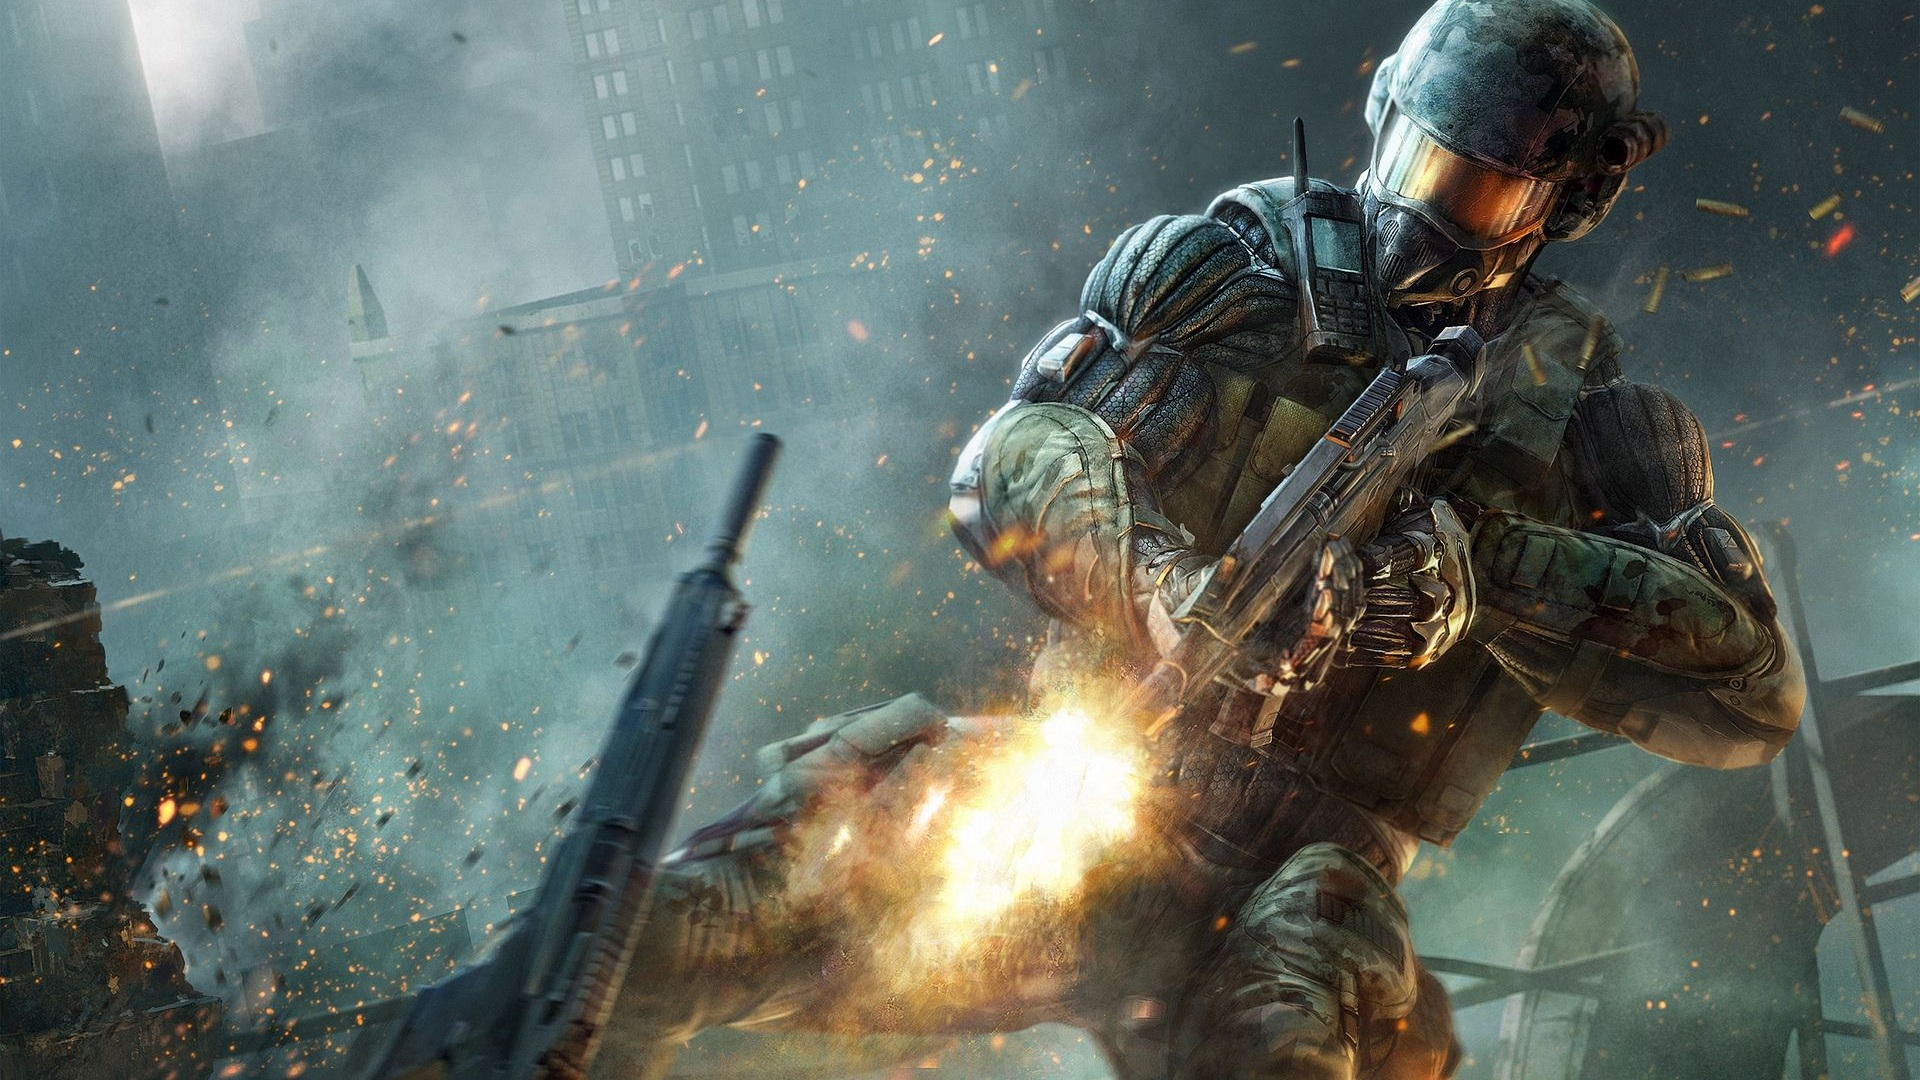 Wallpaper Crysis 2 HD 03 1920x1200 HD Picture, Image